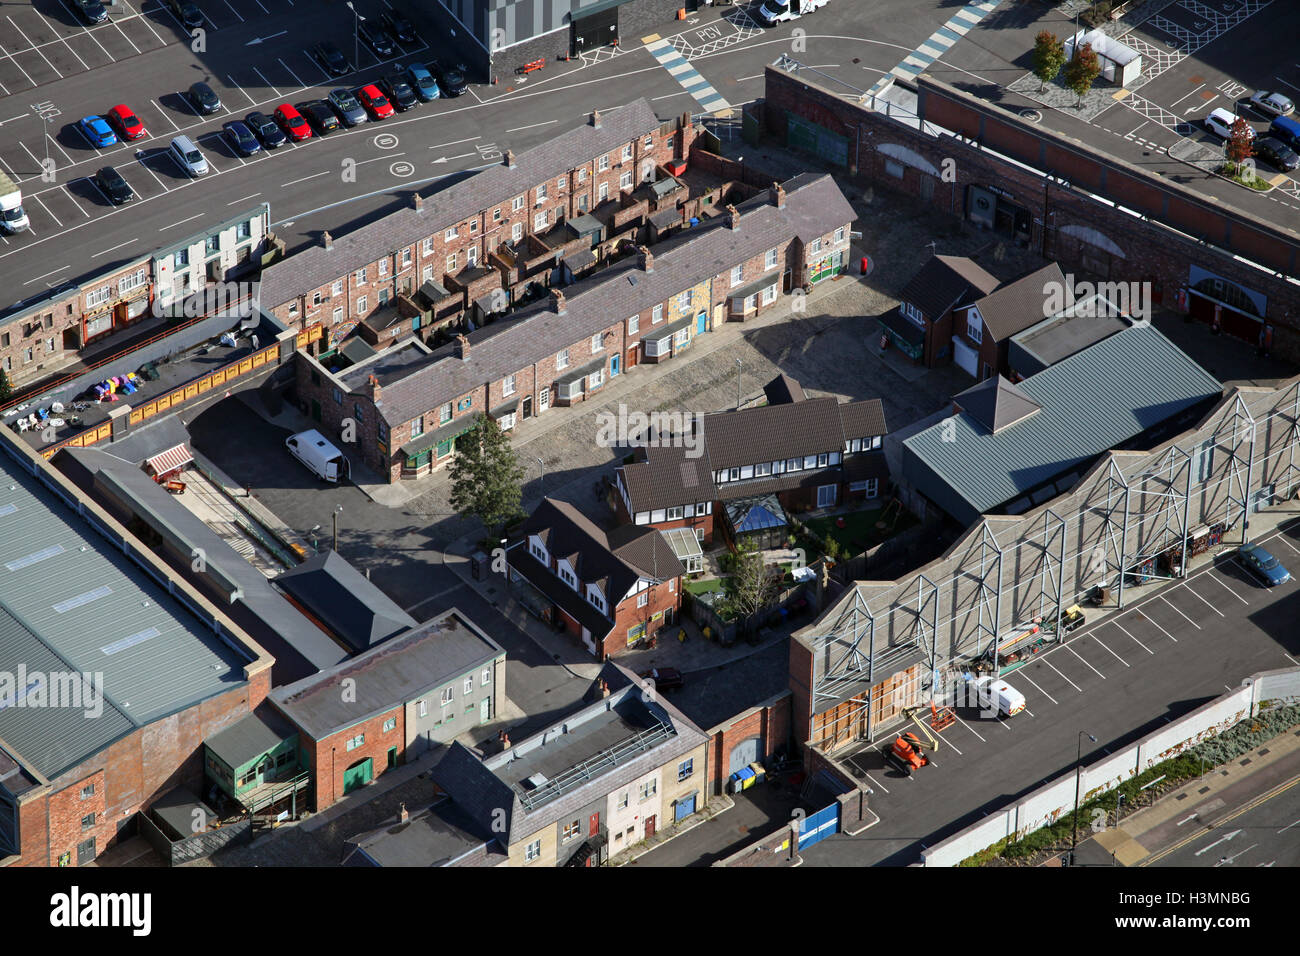 aerial view of the Coronation Street TV location set in Manchester, UK - Stock Image